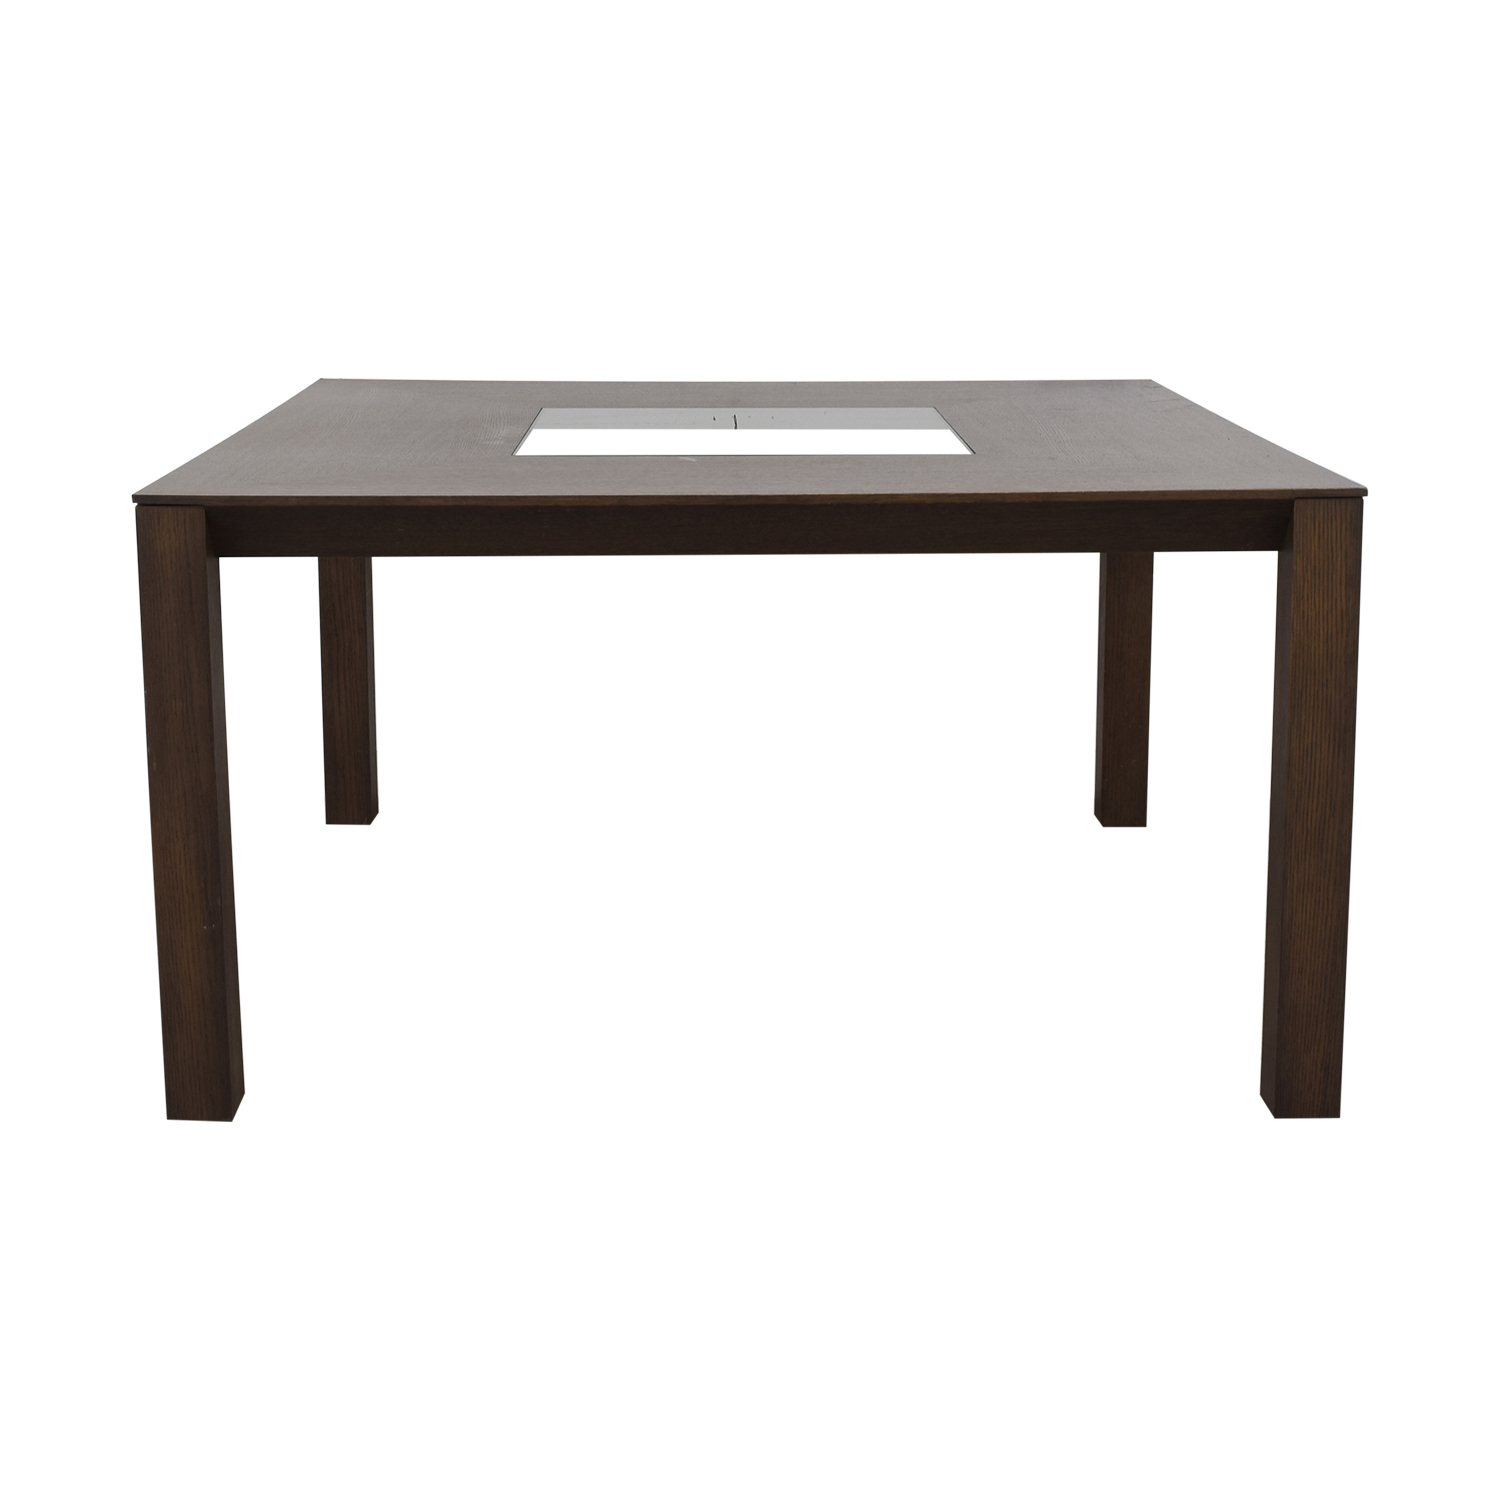 54% Off – Pottery Barn Pottery Barn Benchwright Extending Inside Most Up To Date Benchwright Round Pedestal Dining Tables (View 13 of 25)